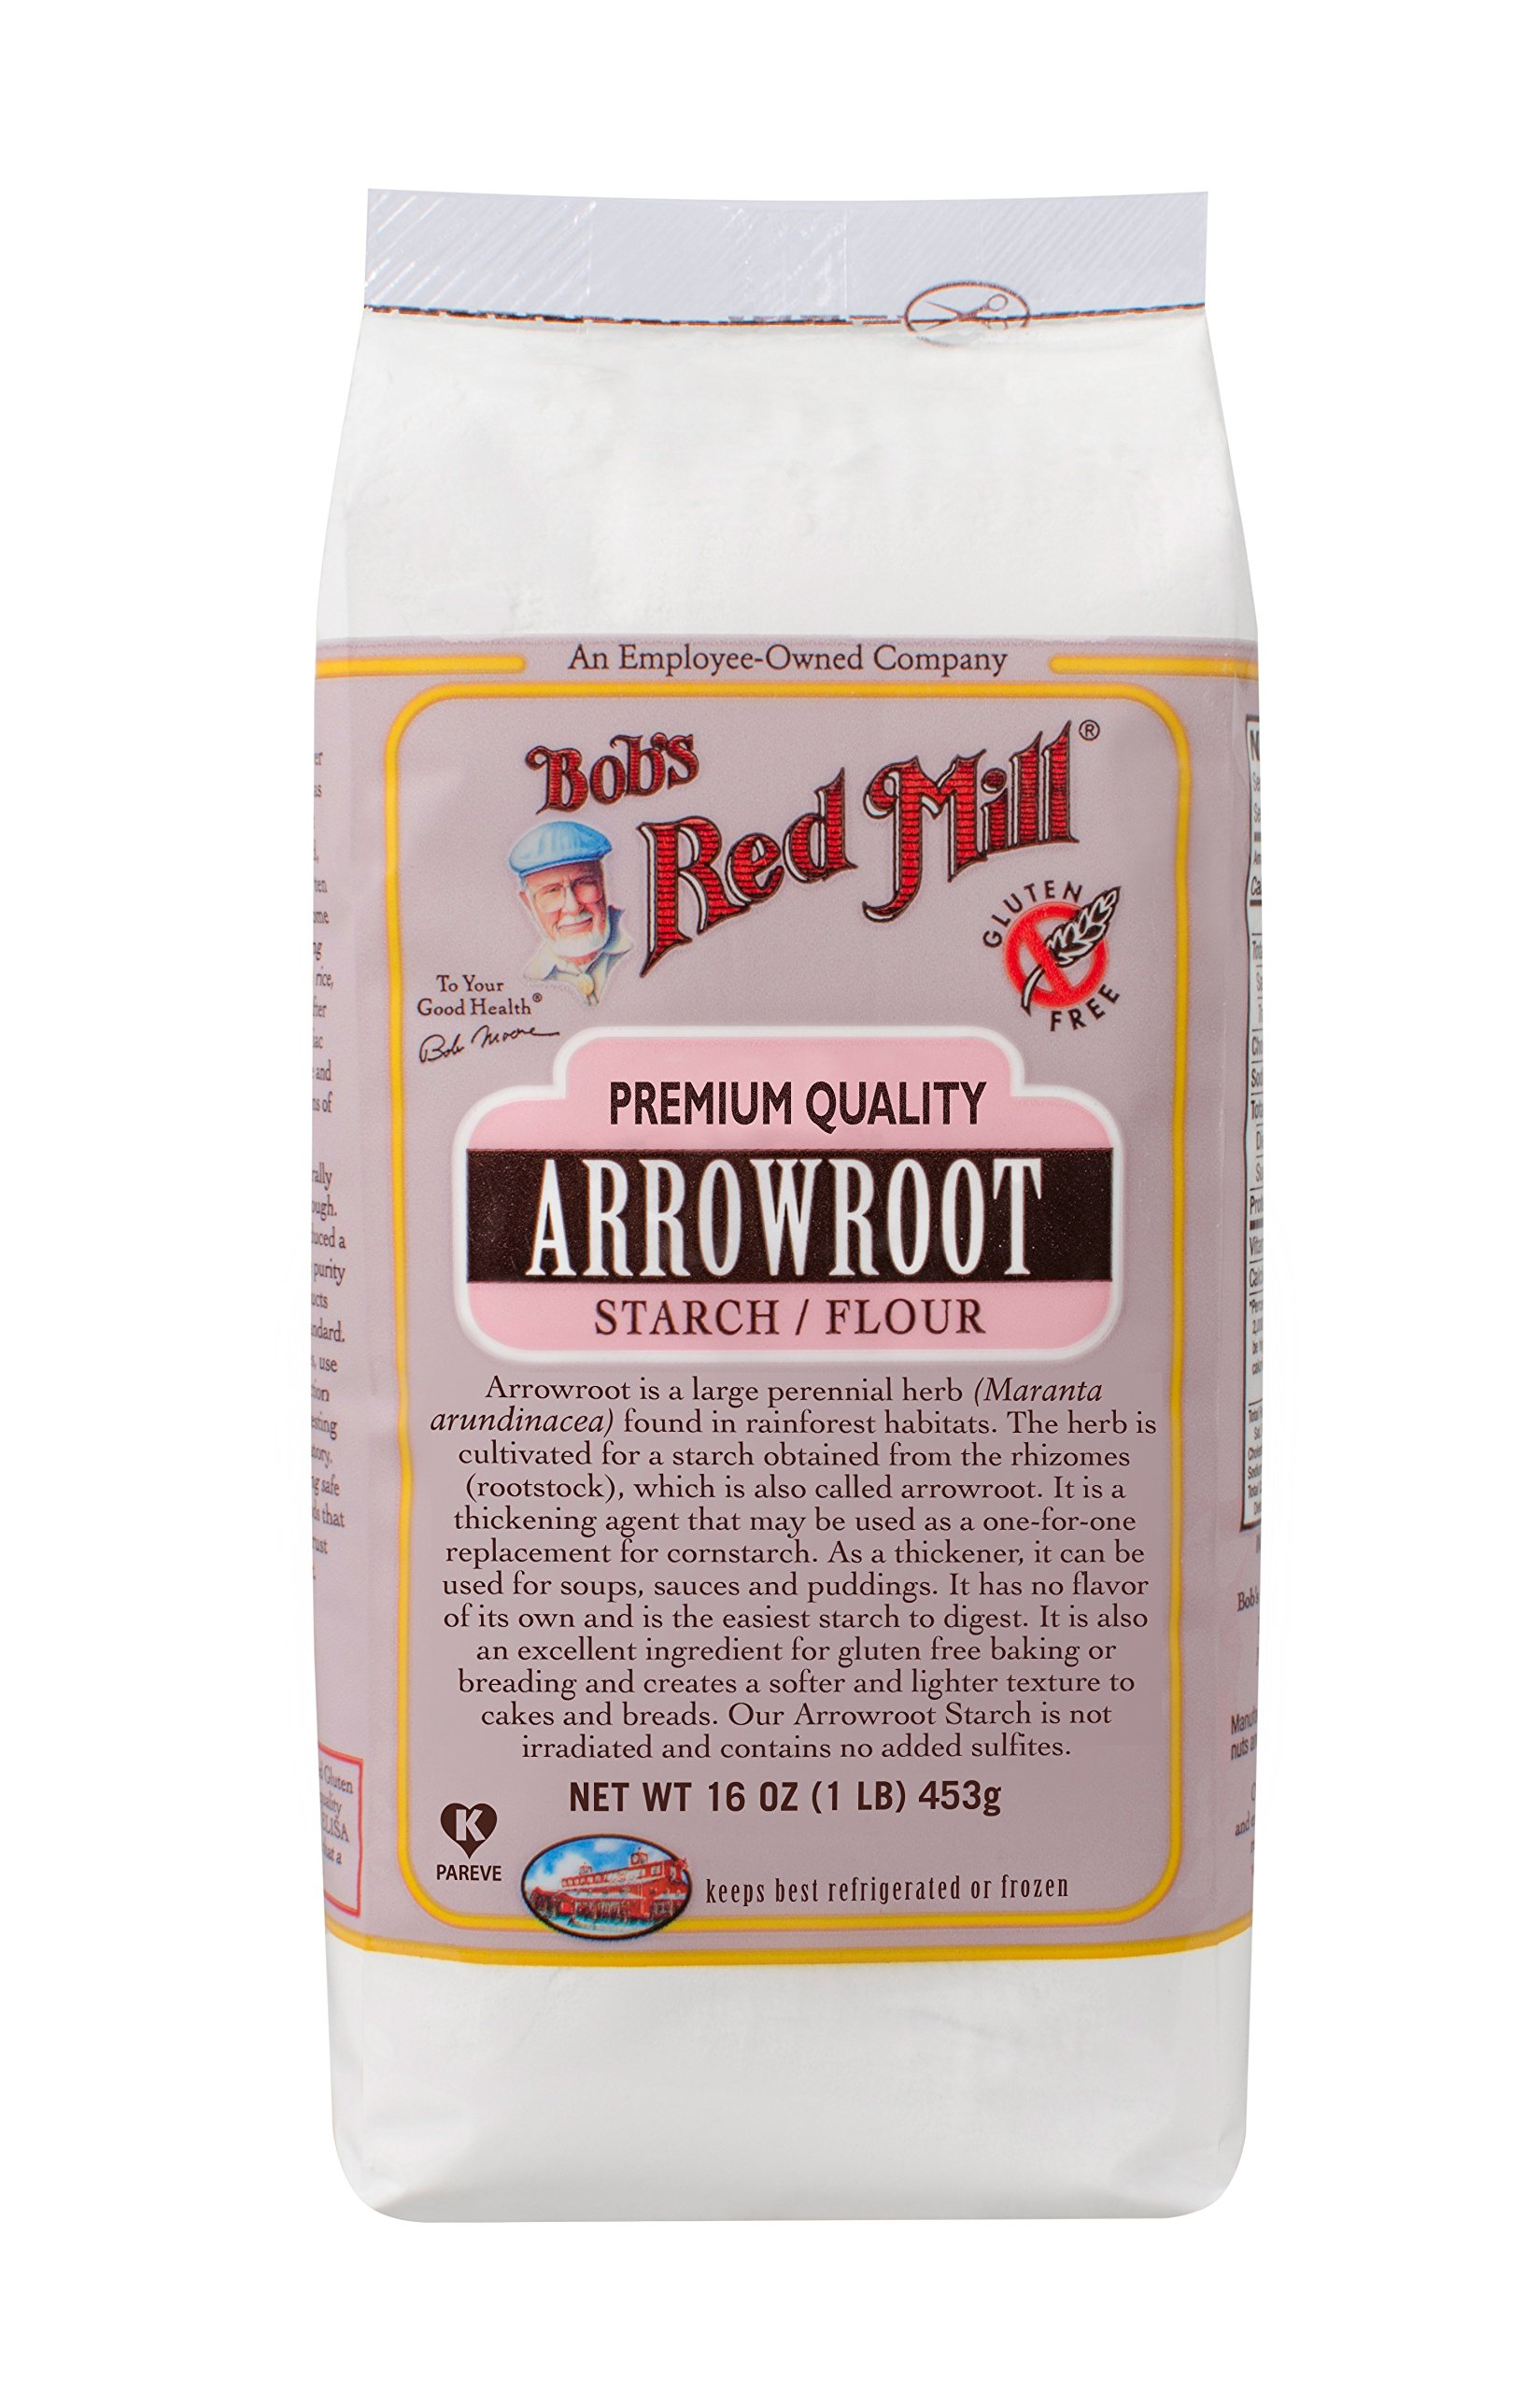 Bob's Red Mill Arrowroot Starch/Flour, 16-ounce (Pack of 4) by Bob's Red Mill (Image #3)